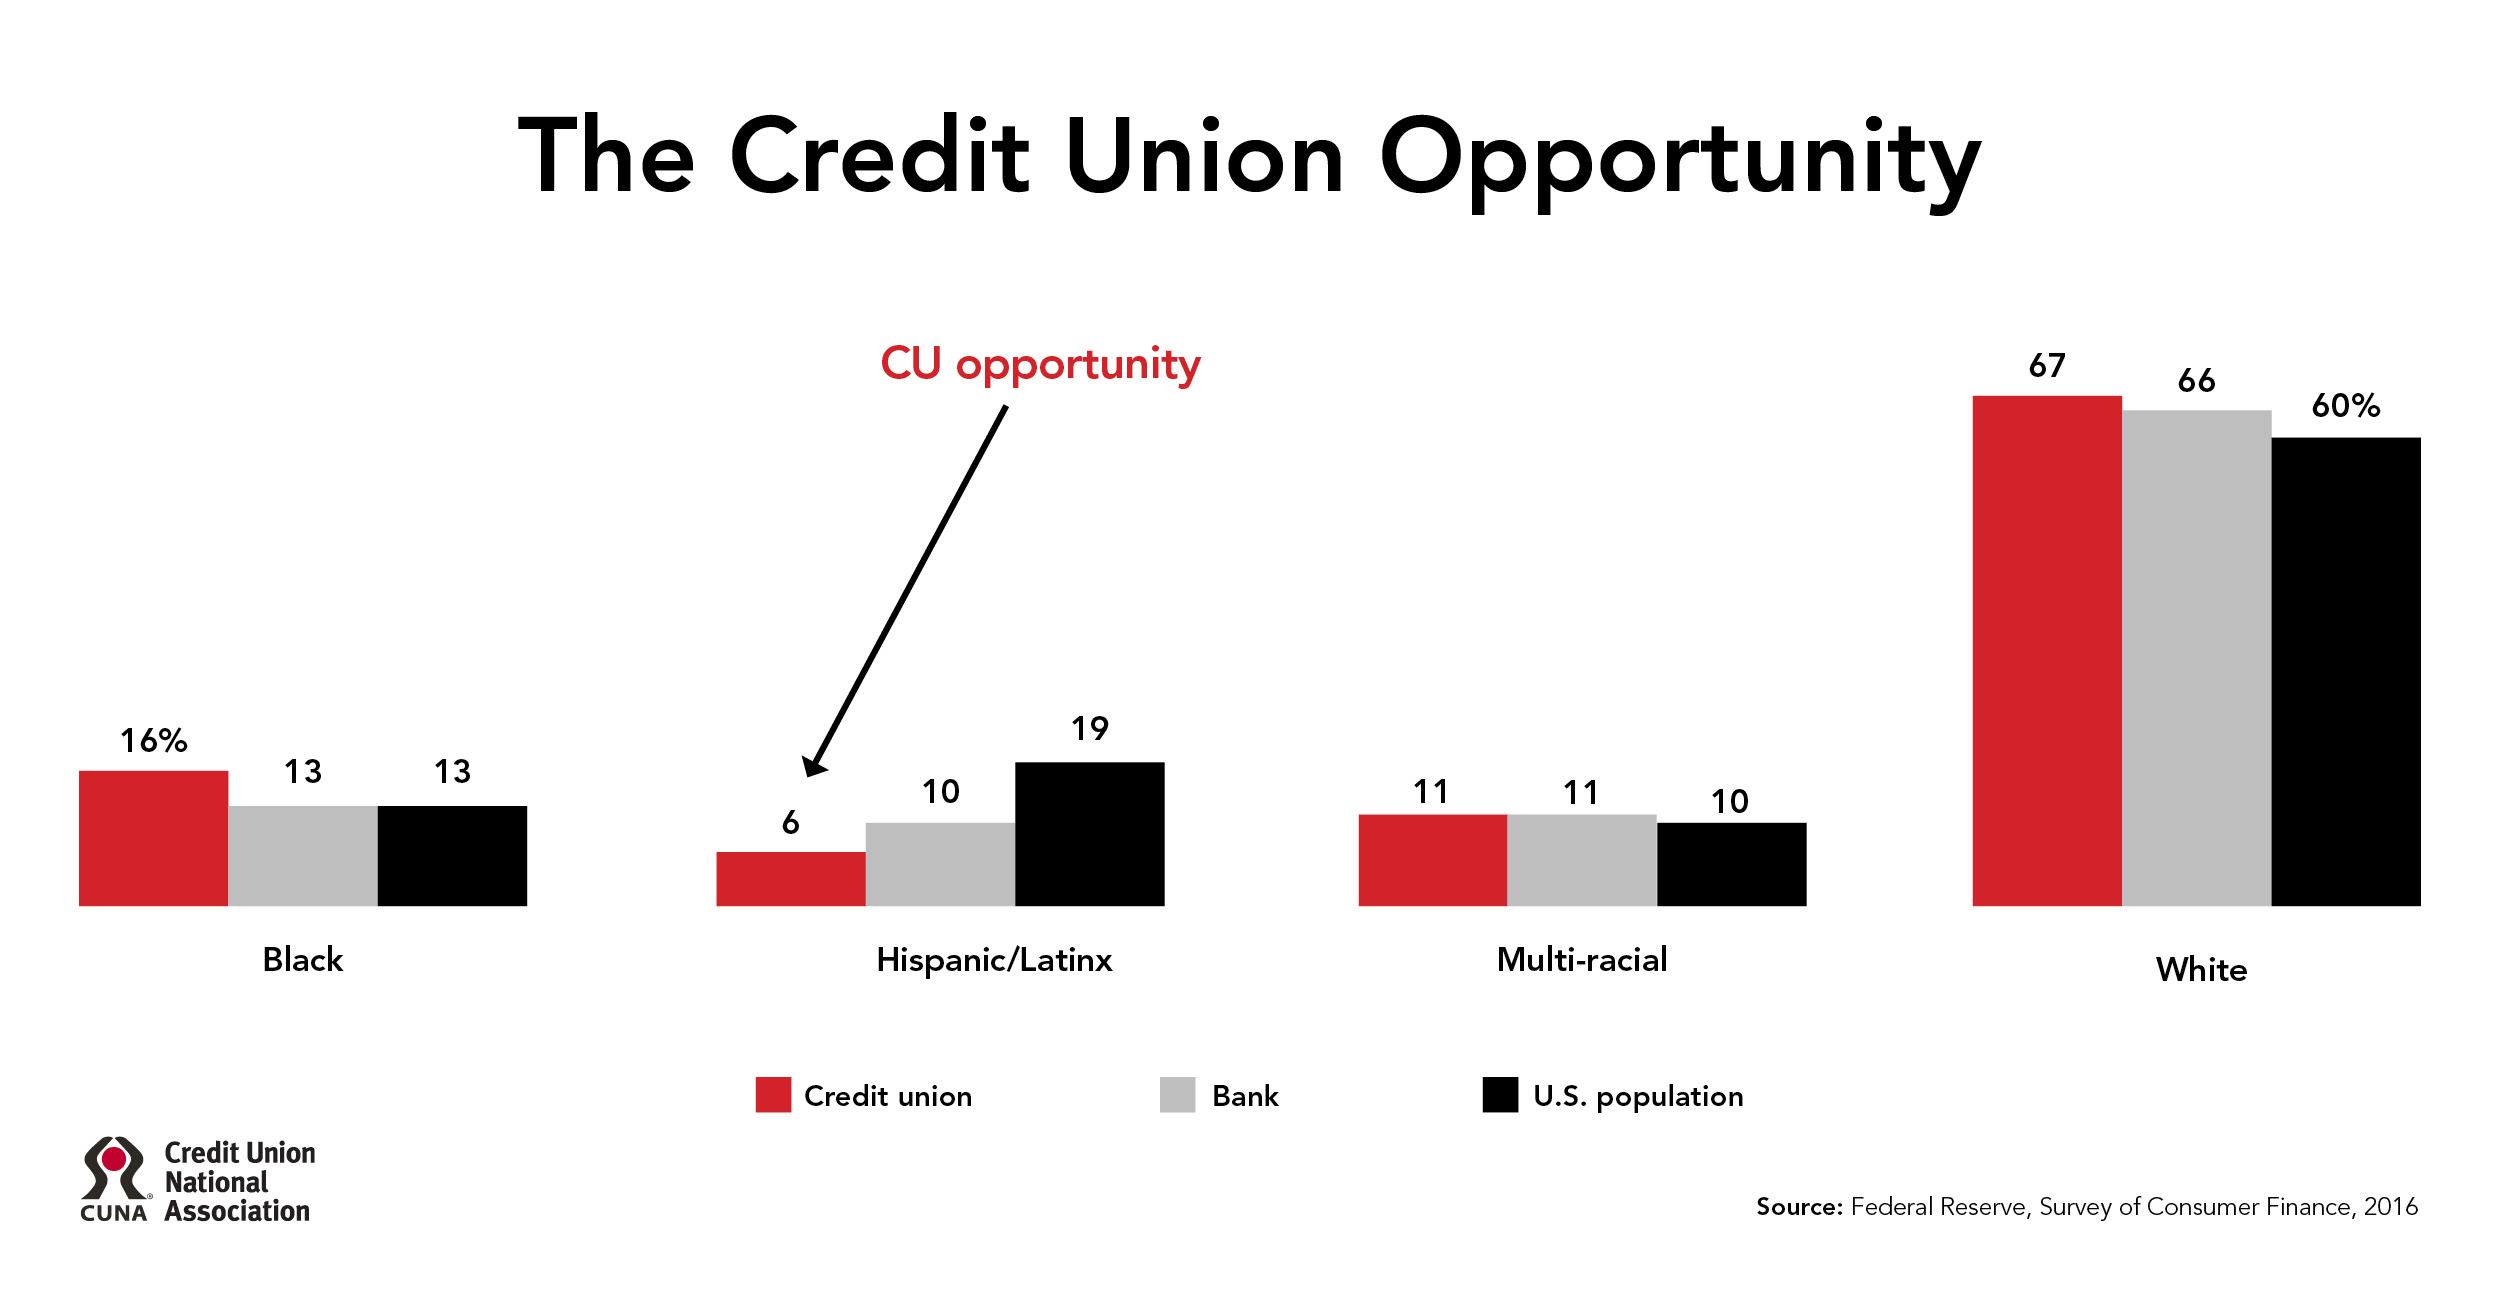 The Credit Union Opportunity